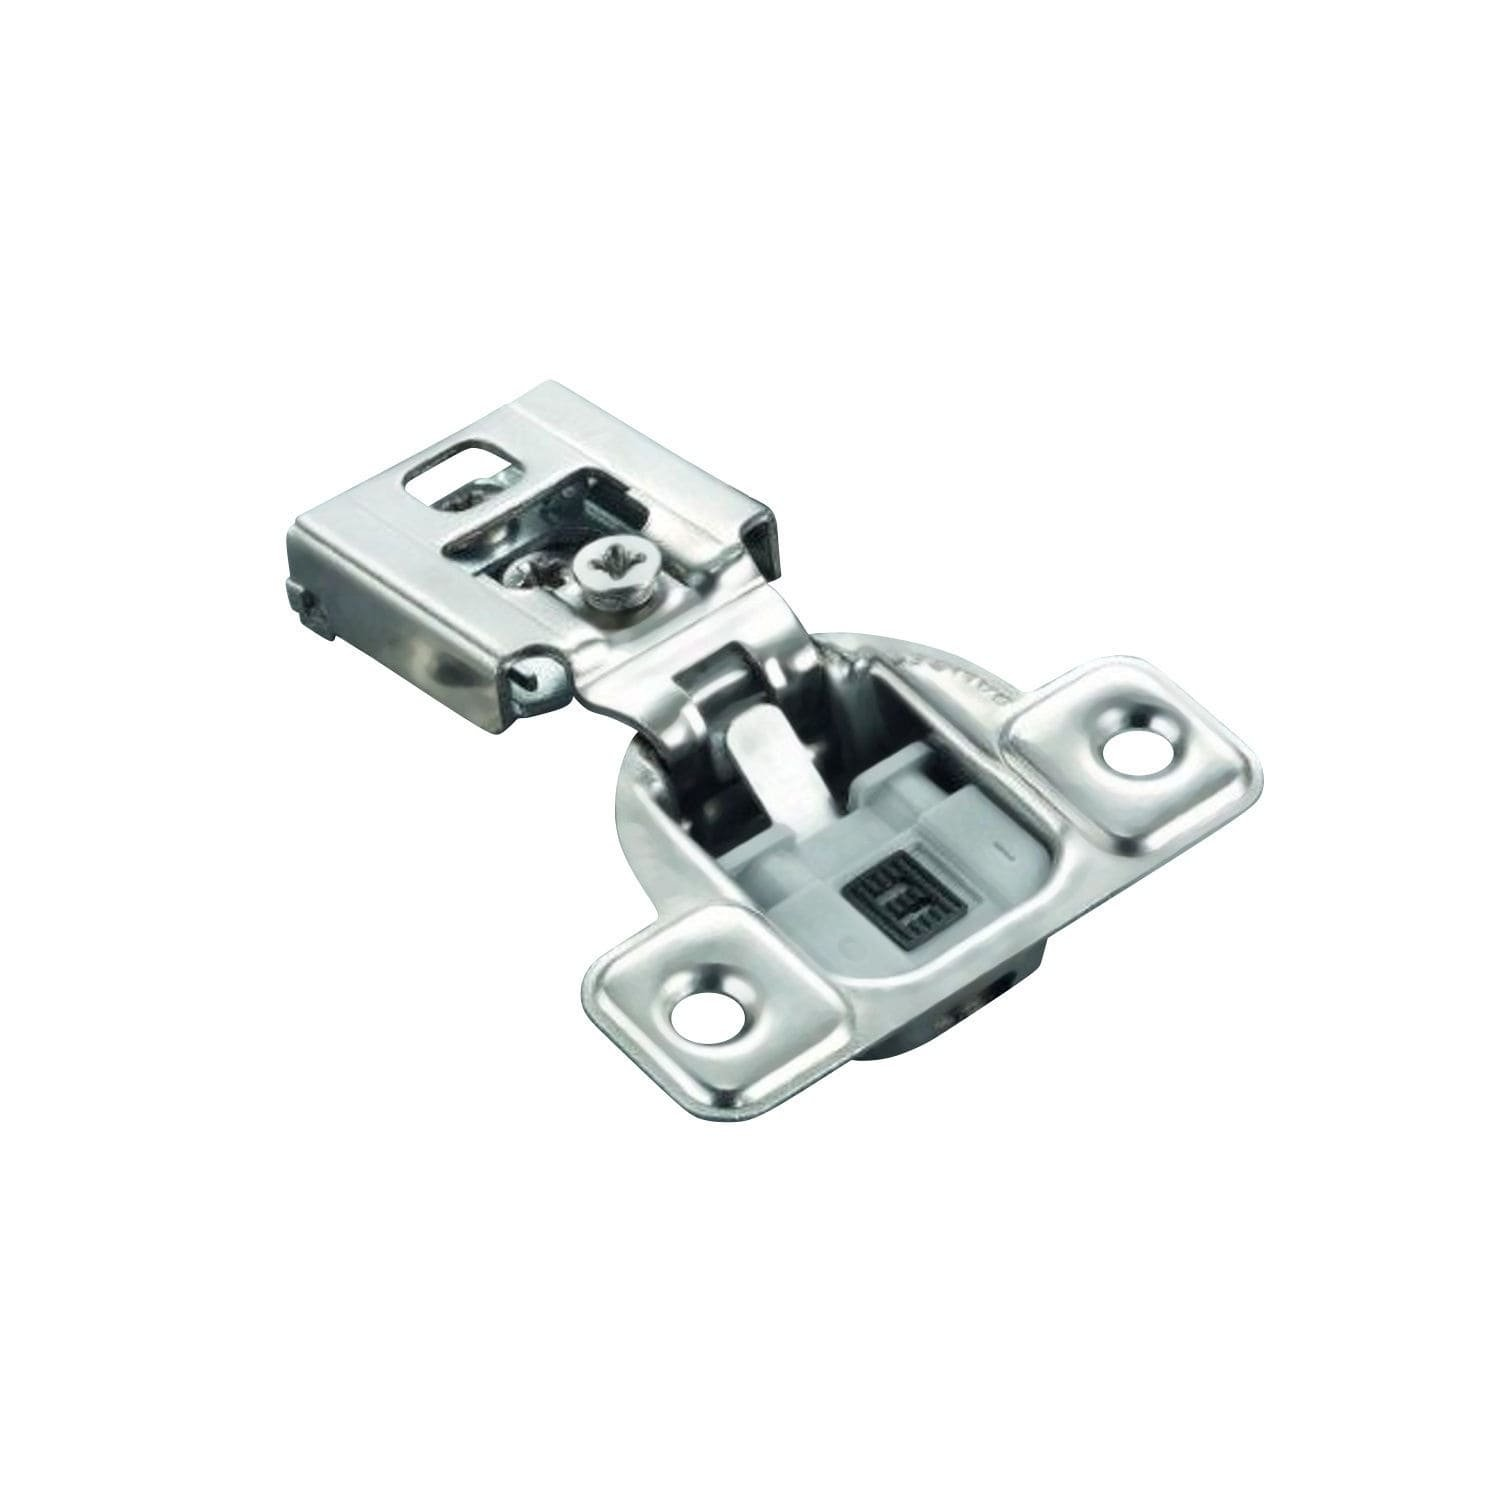 Salice 106-degree 1/2-inch Overlay Soft-close Knock-in Face Frame Hinge (Case of 25)